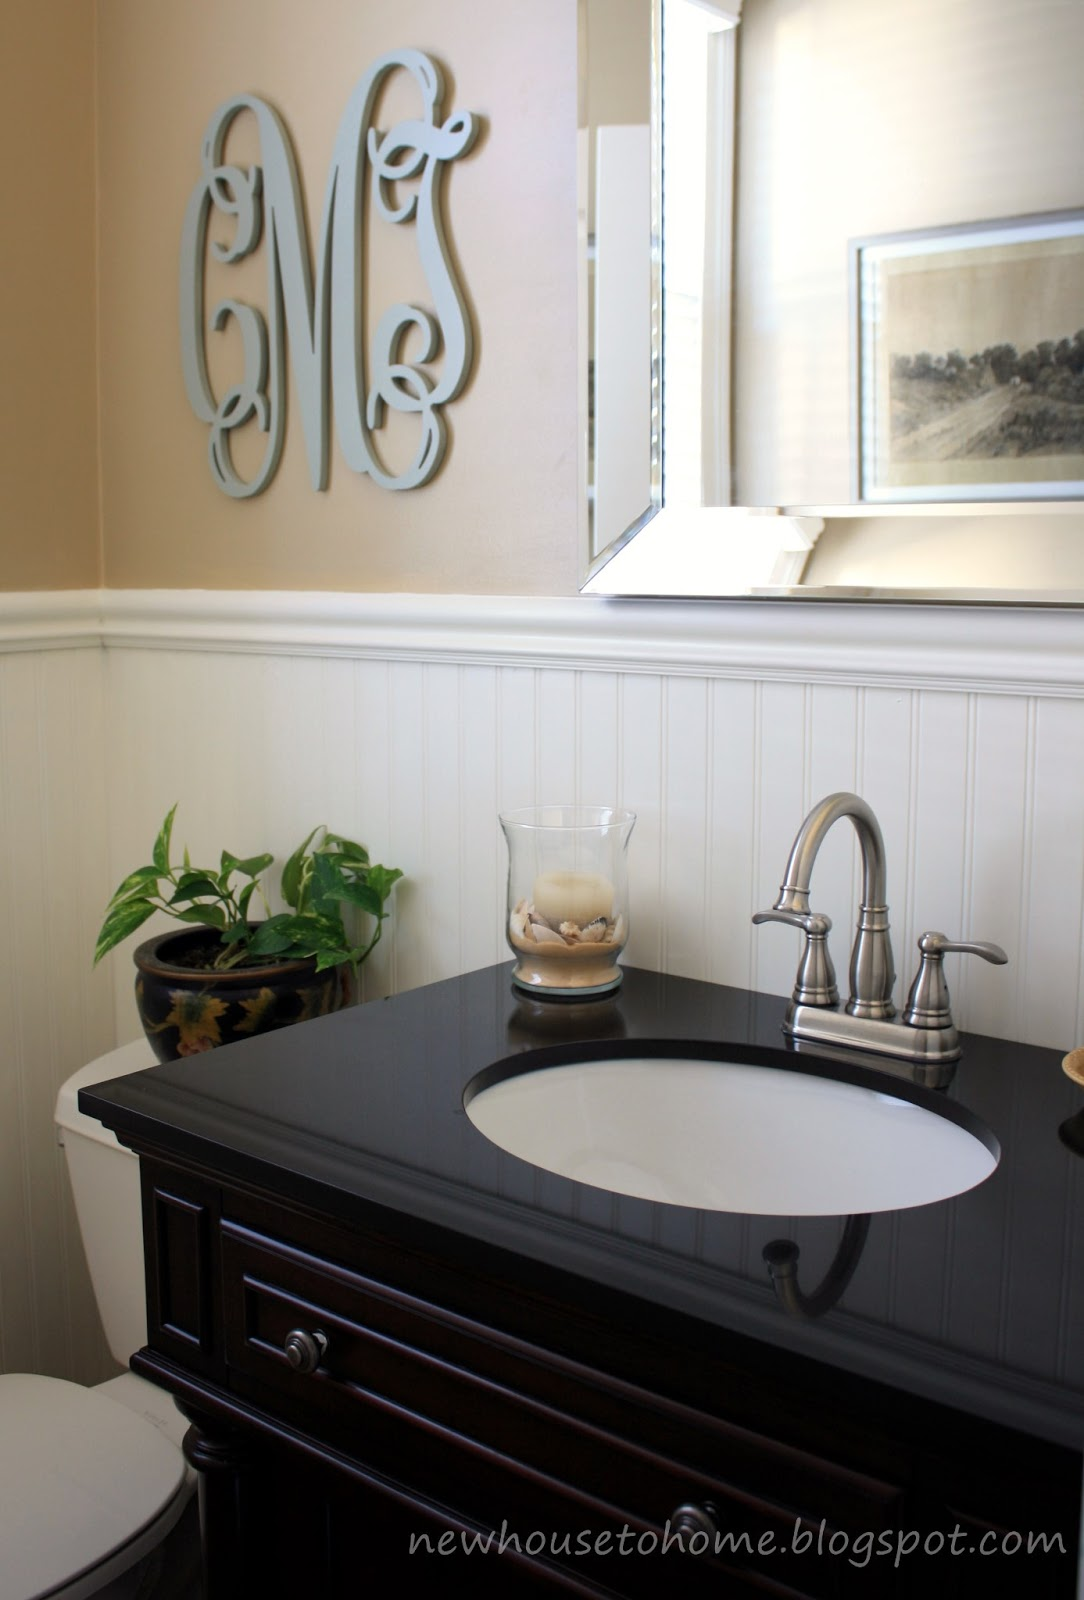 New House to Home: Powder Room Redo